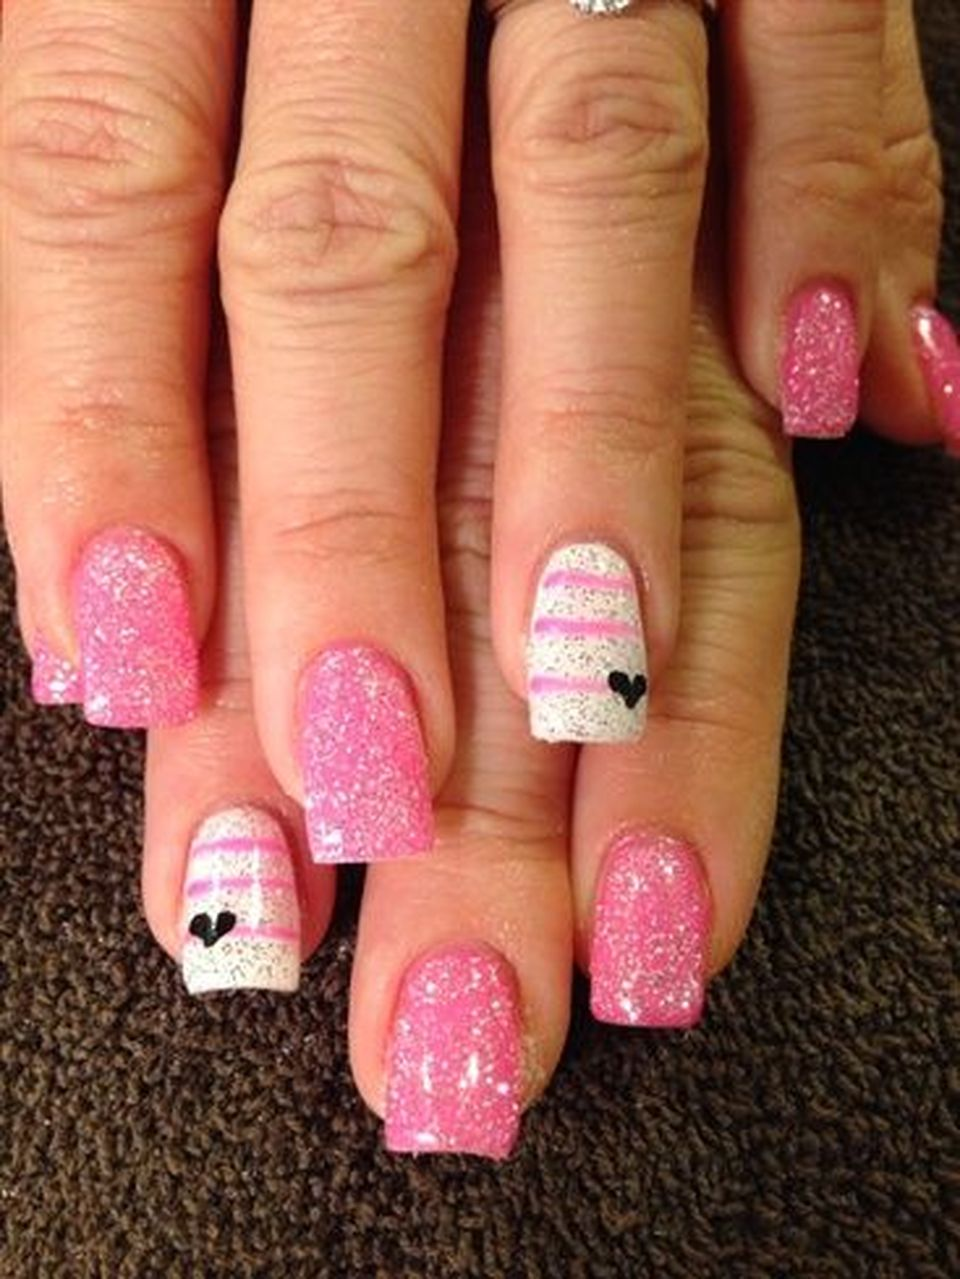 Lovely valentine nails design ideas 14 - Fashion Best